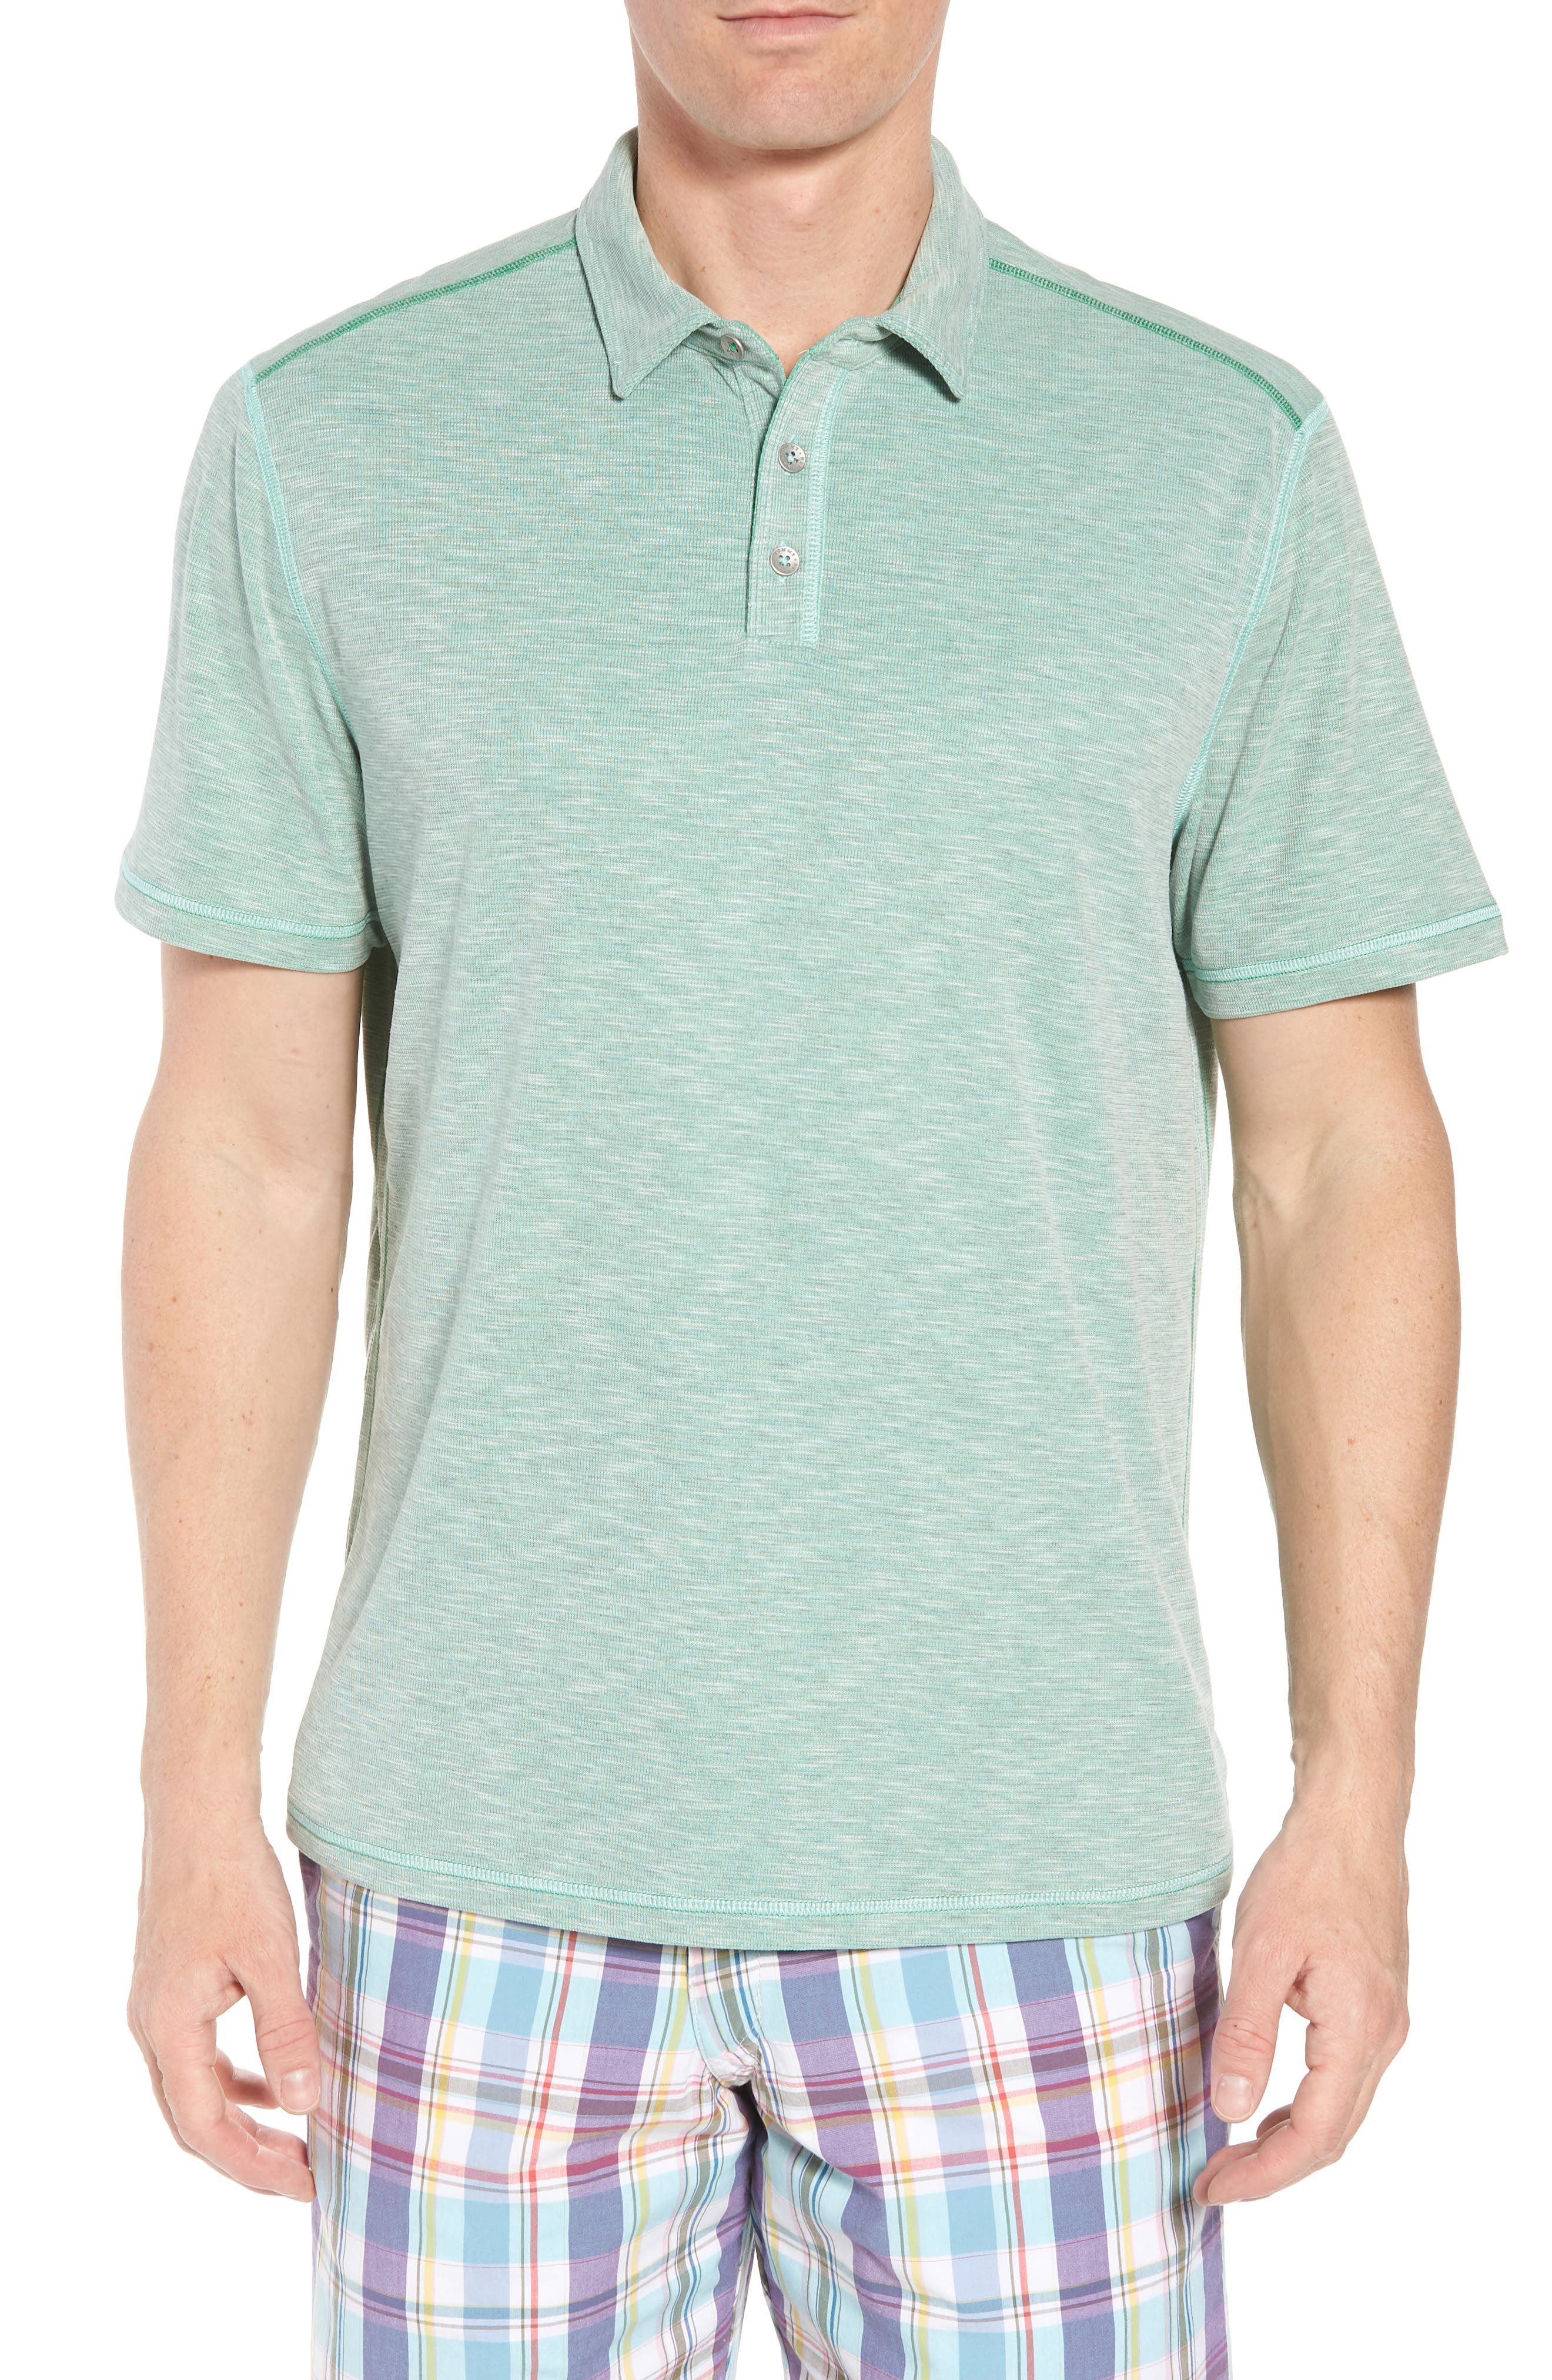 Flip Tide Tee Spectator Polo,                             Main thumbnail 1, color,                             Green Finch